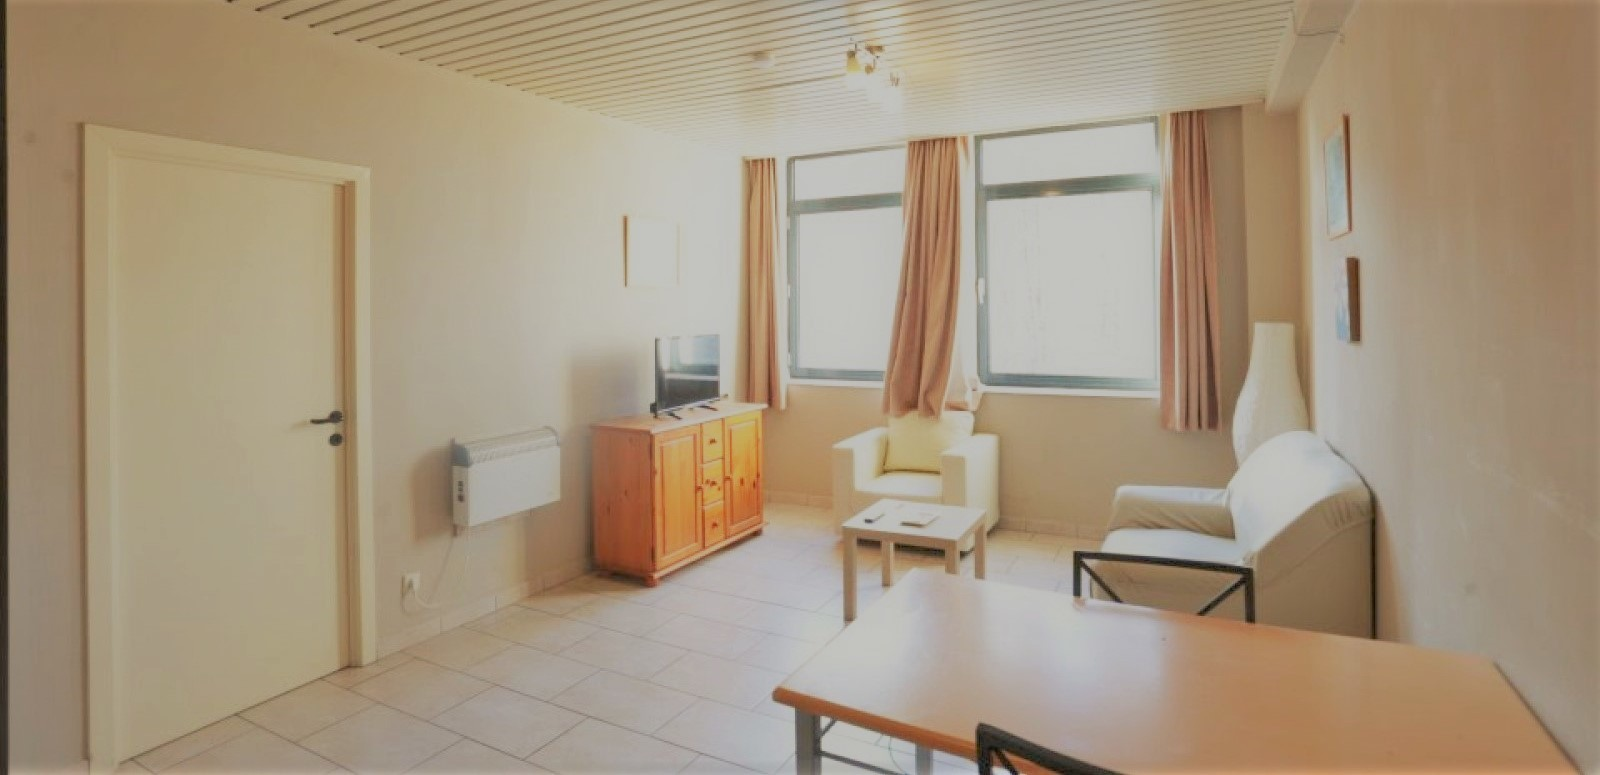 Beautiful Flat/Studio For Rent At Condo Gardens Brussels